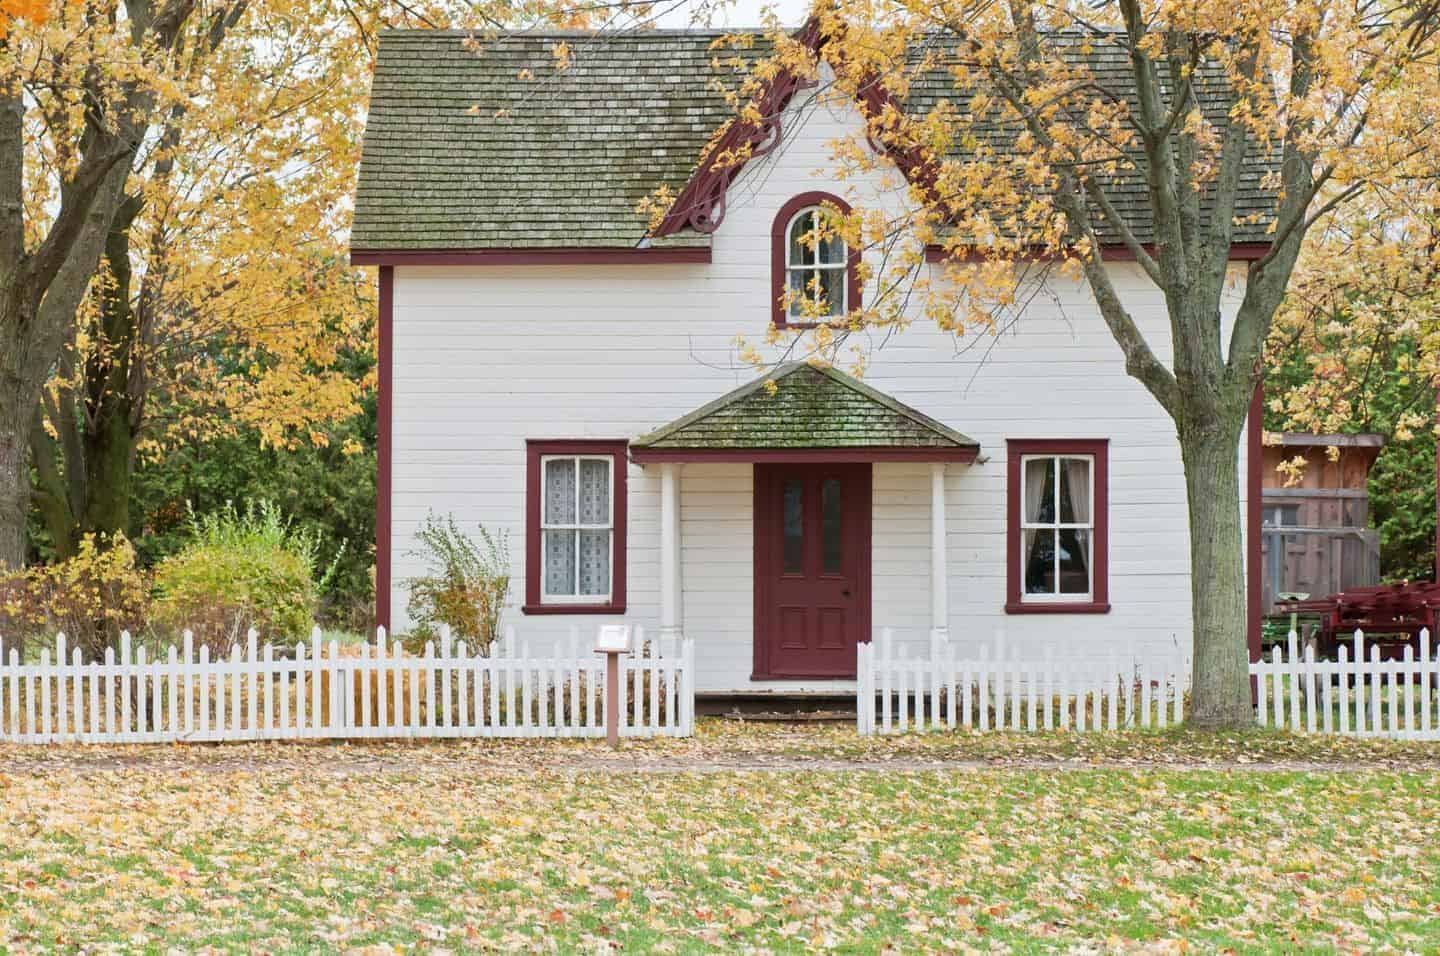 9 Step First-Time Home Buyer Guide for Beginners - DollarSprout